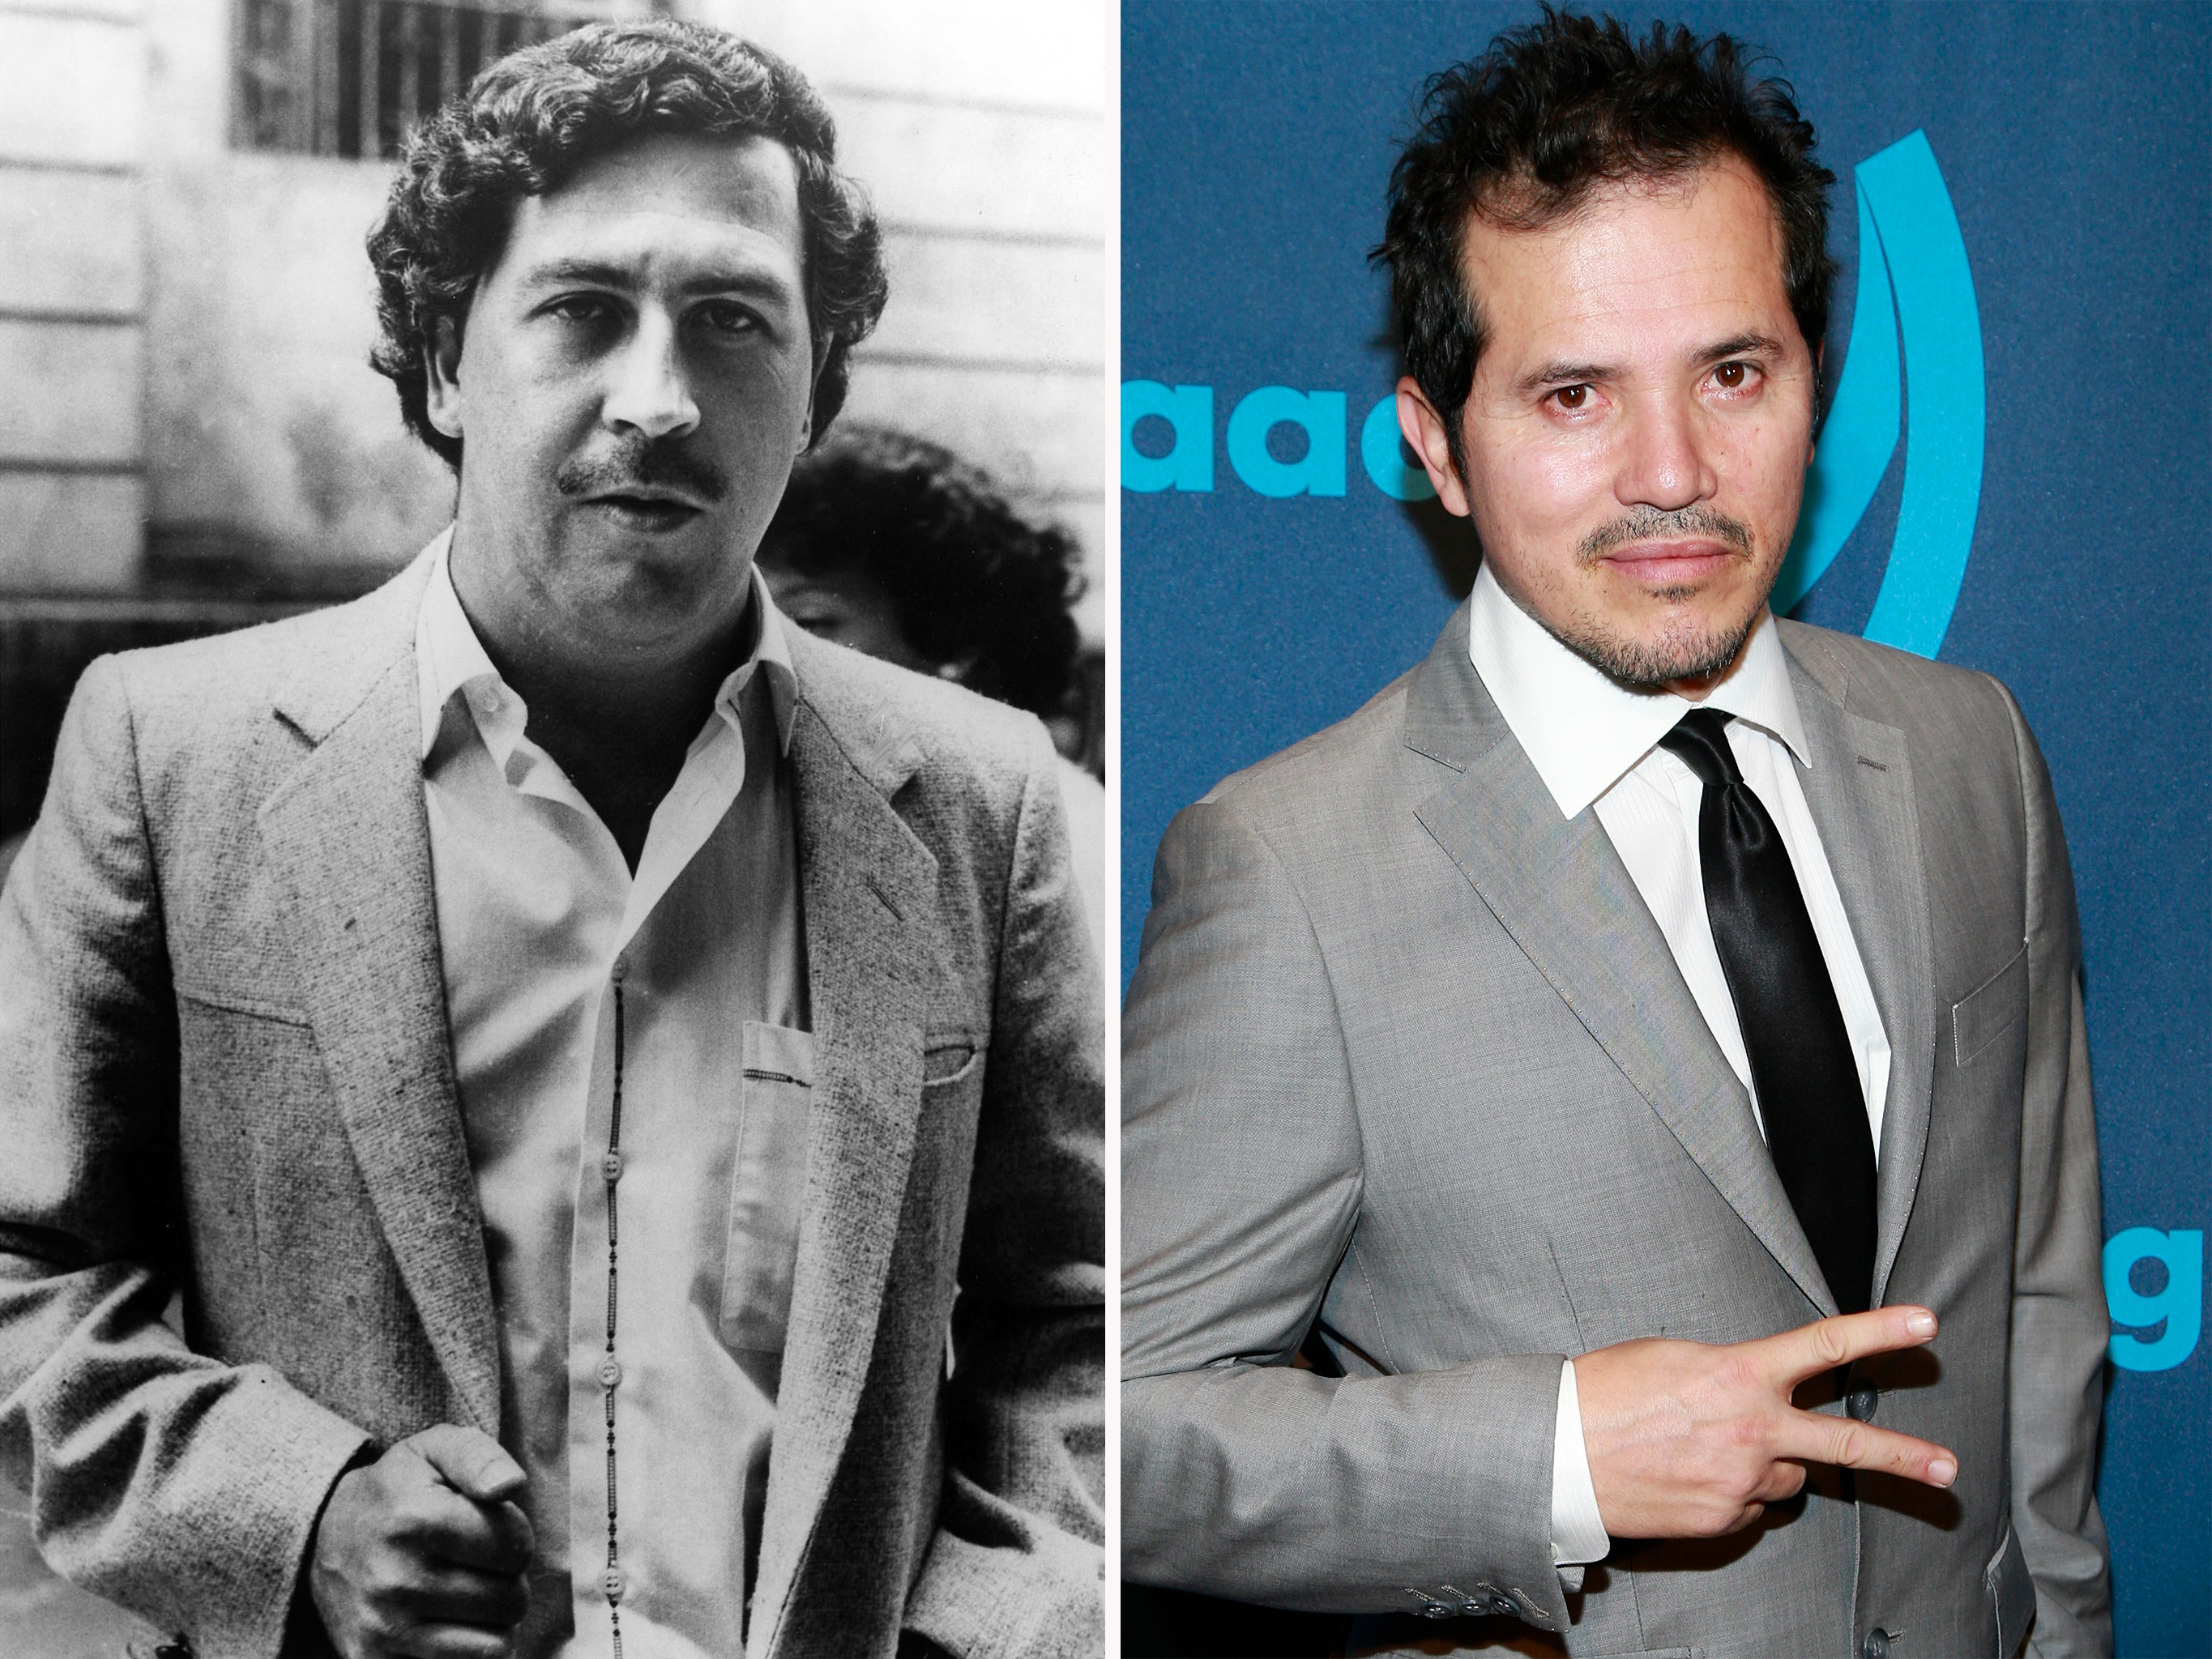 Pablo Escobar & John Leguizamo. Photos by ©AP Photo & WireImage.